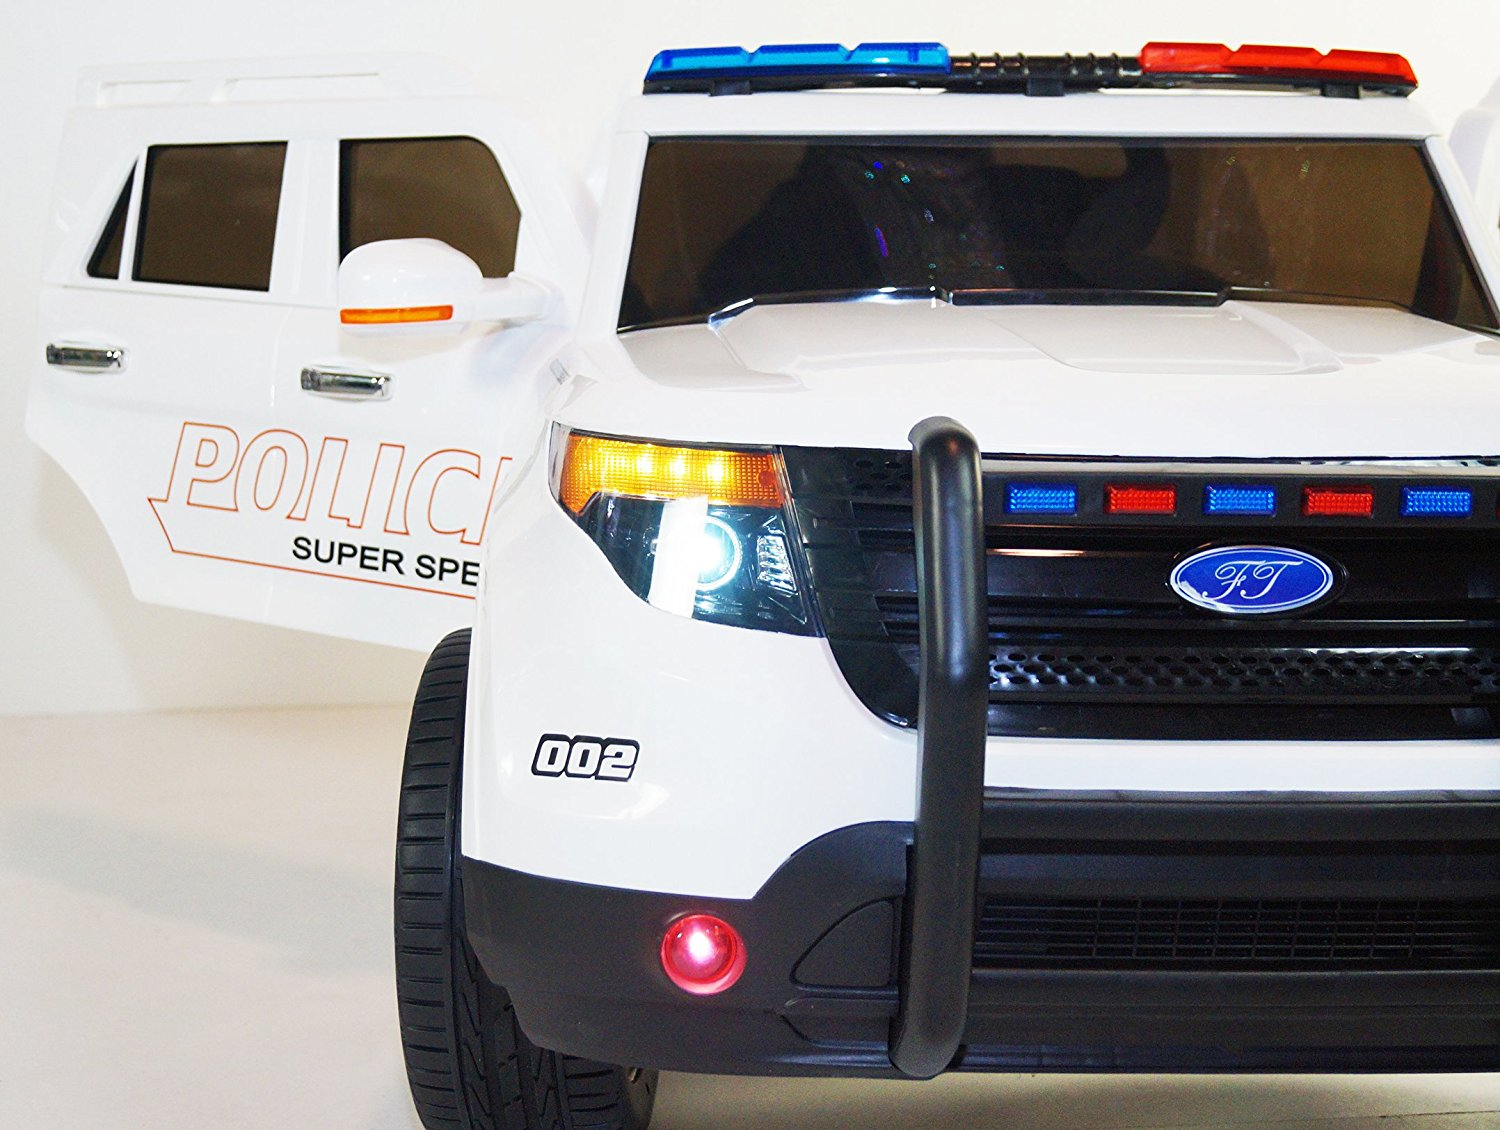 Electric cAr POLICE CAR/FORD style. Cars for Kids RIDE on CAR. WITH REMOTE CONTROL. BATTERY Operated. Ride on TOYS. MP3. ELECTRIC KIDS CARS. NEW. 2 to 6 years. Children. Girls and Boys.